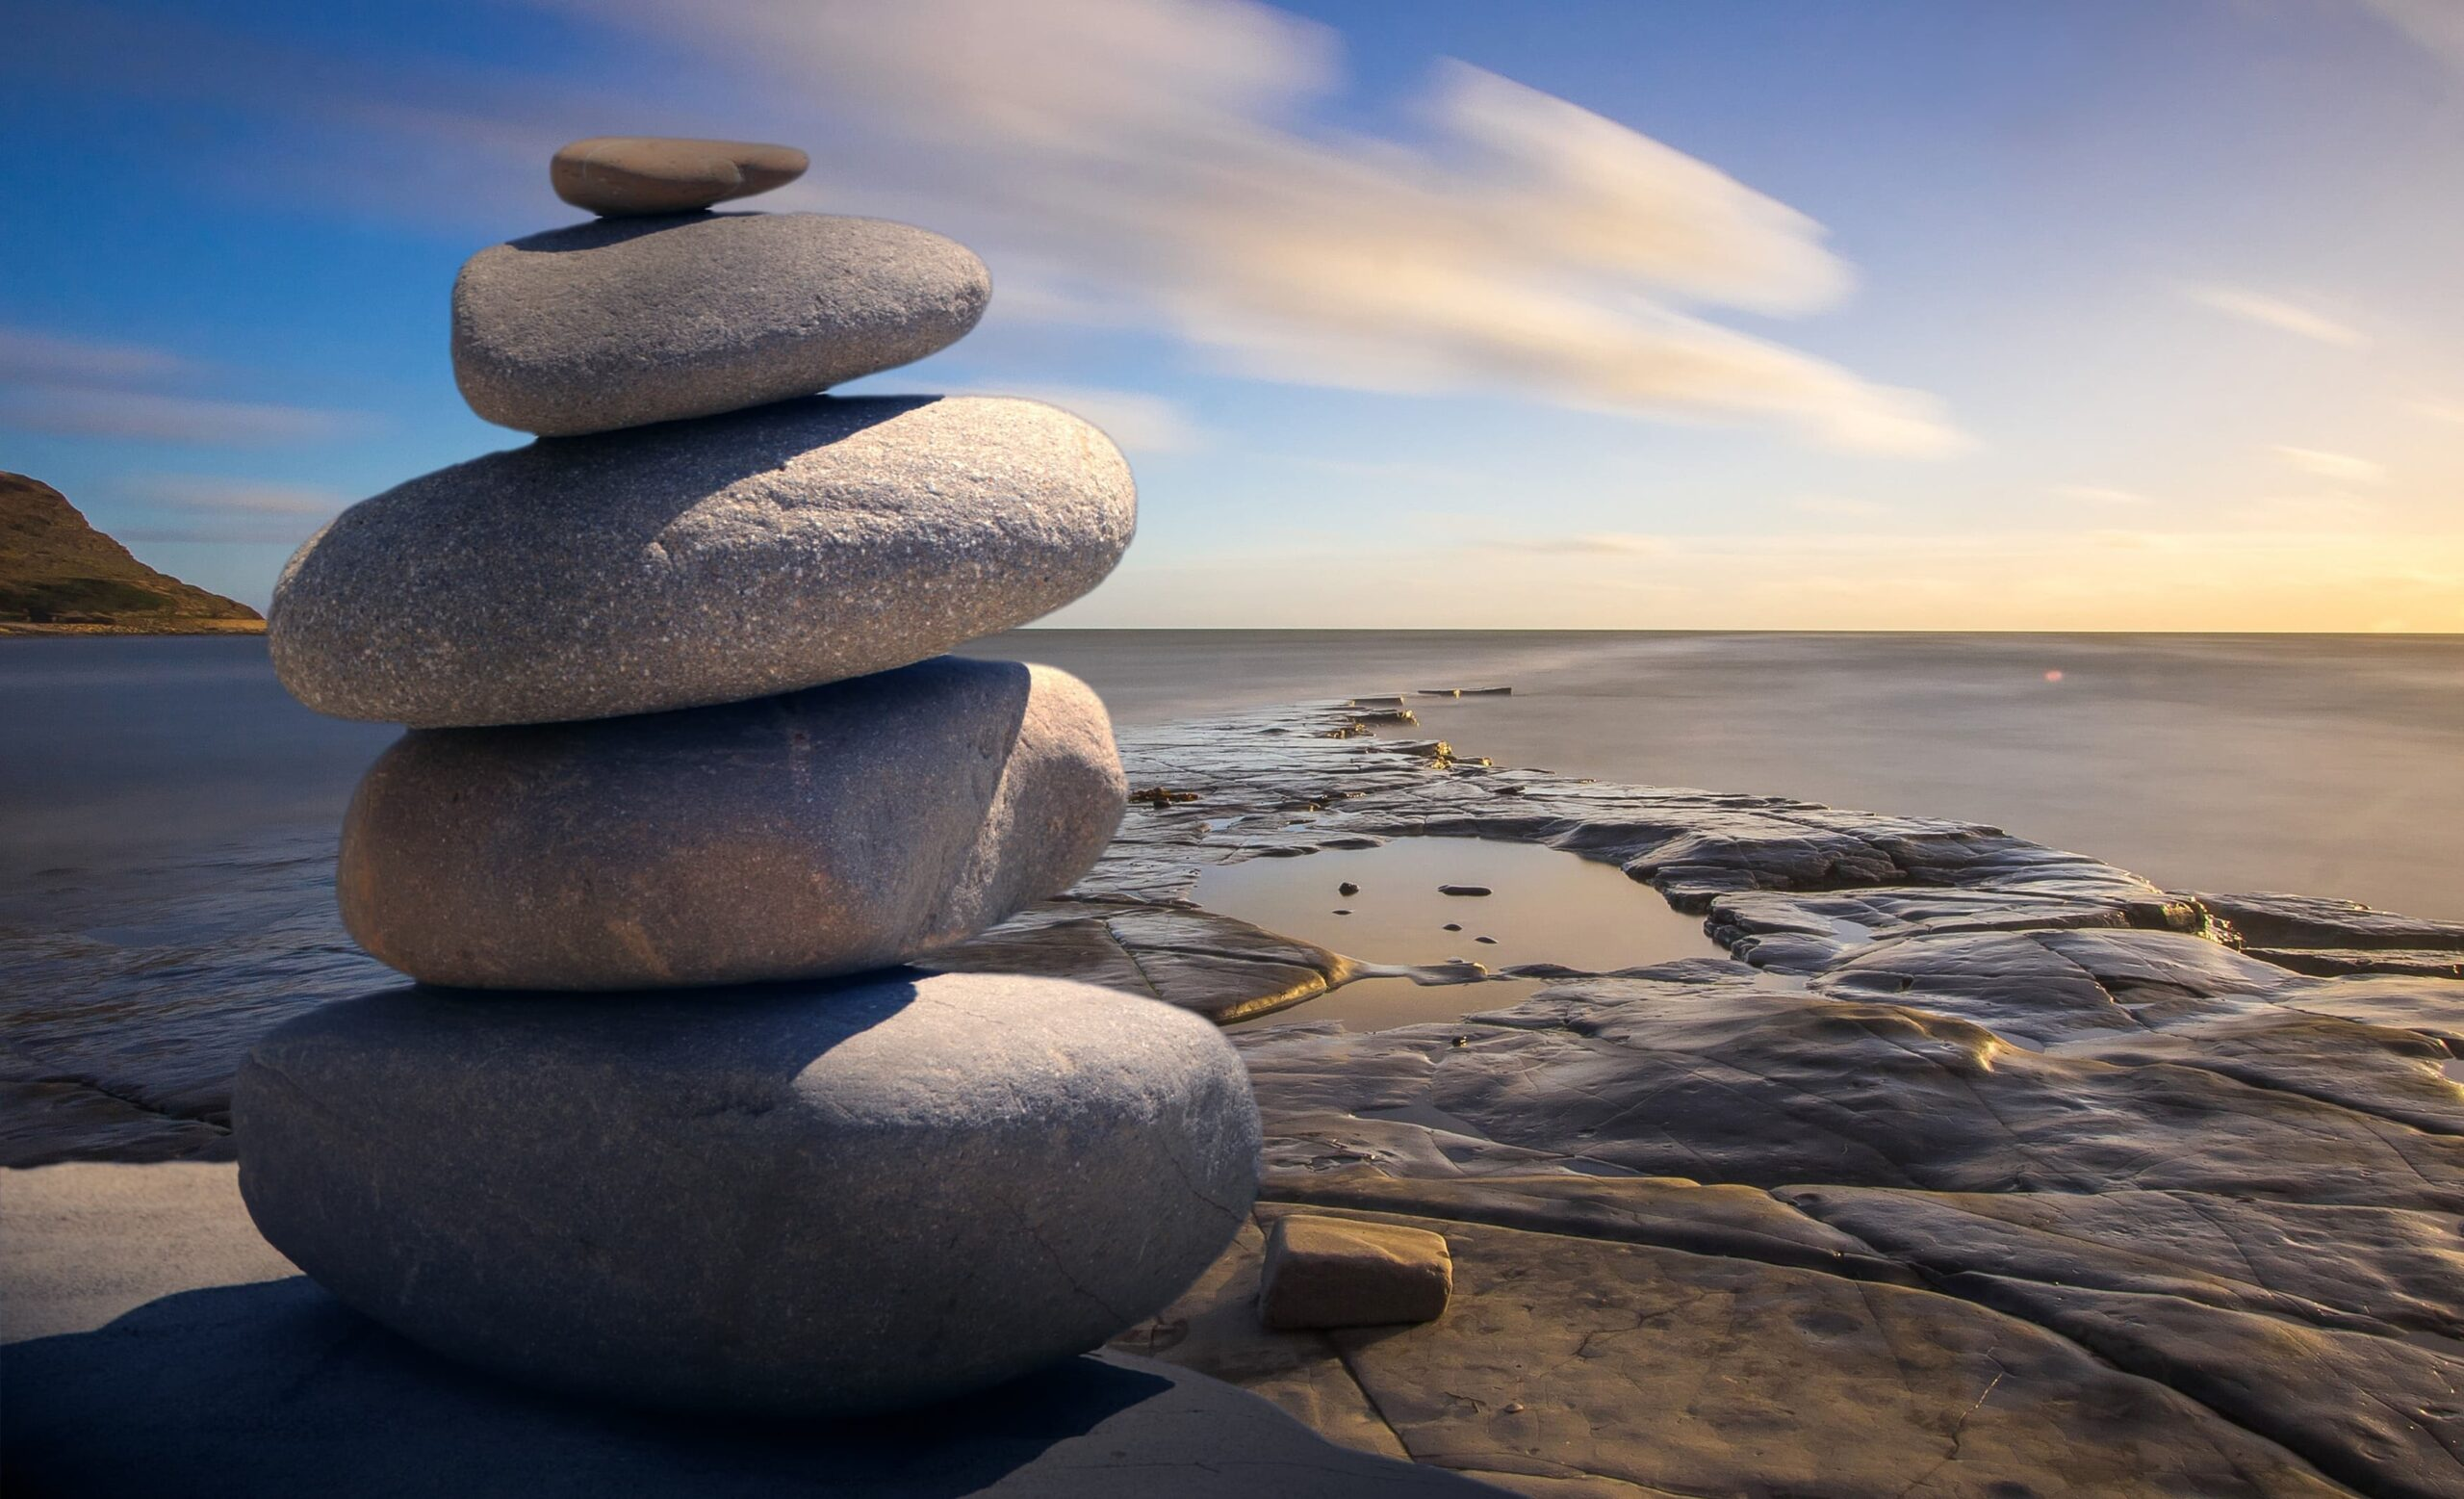 stones stacked on a beach scaled